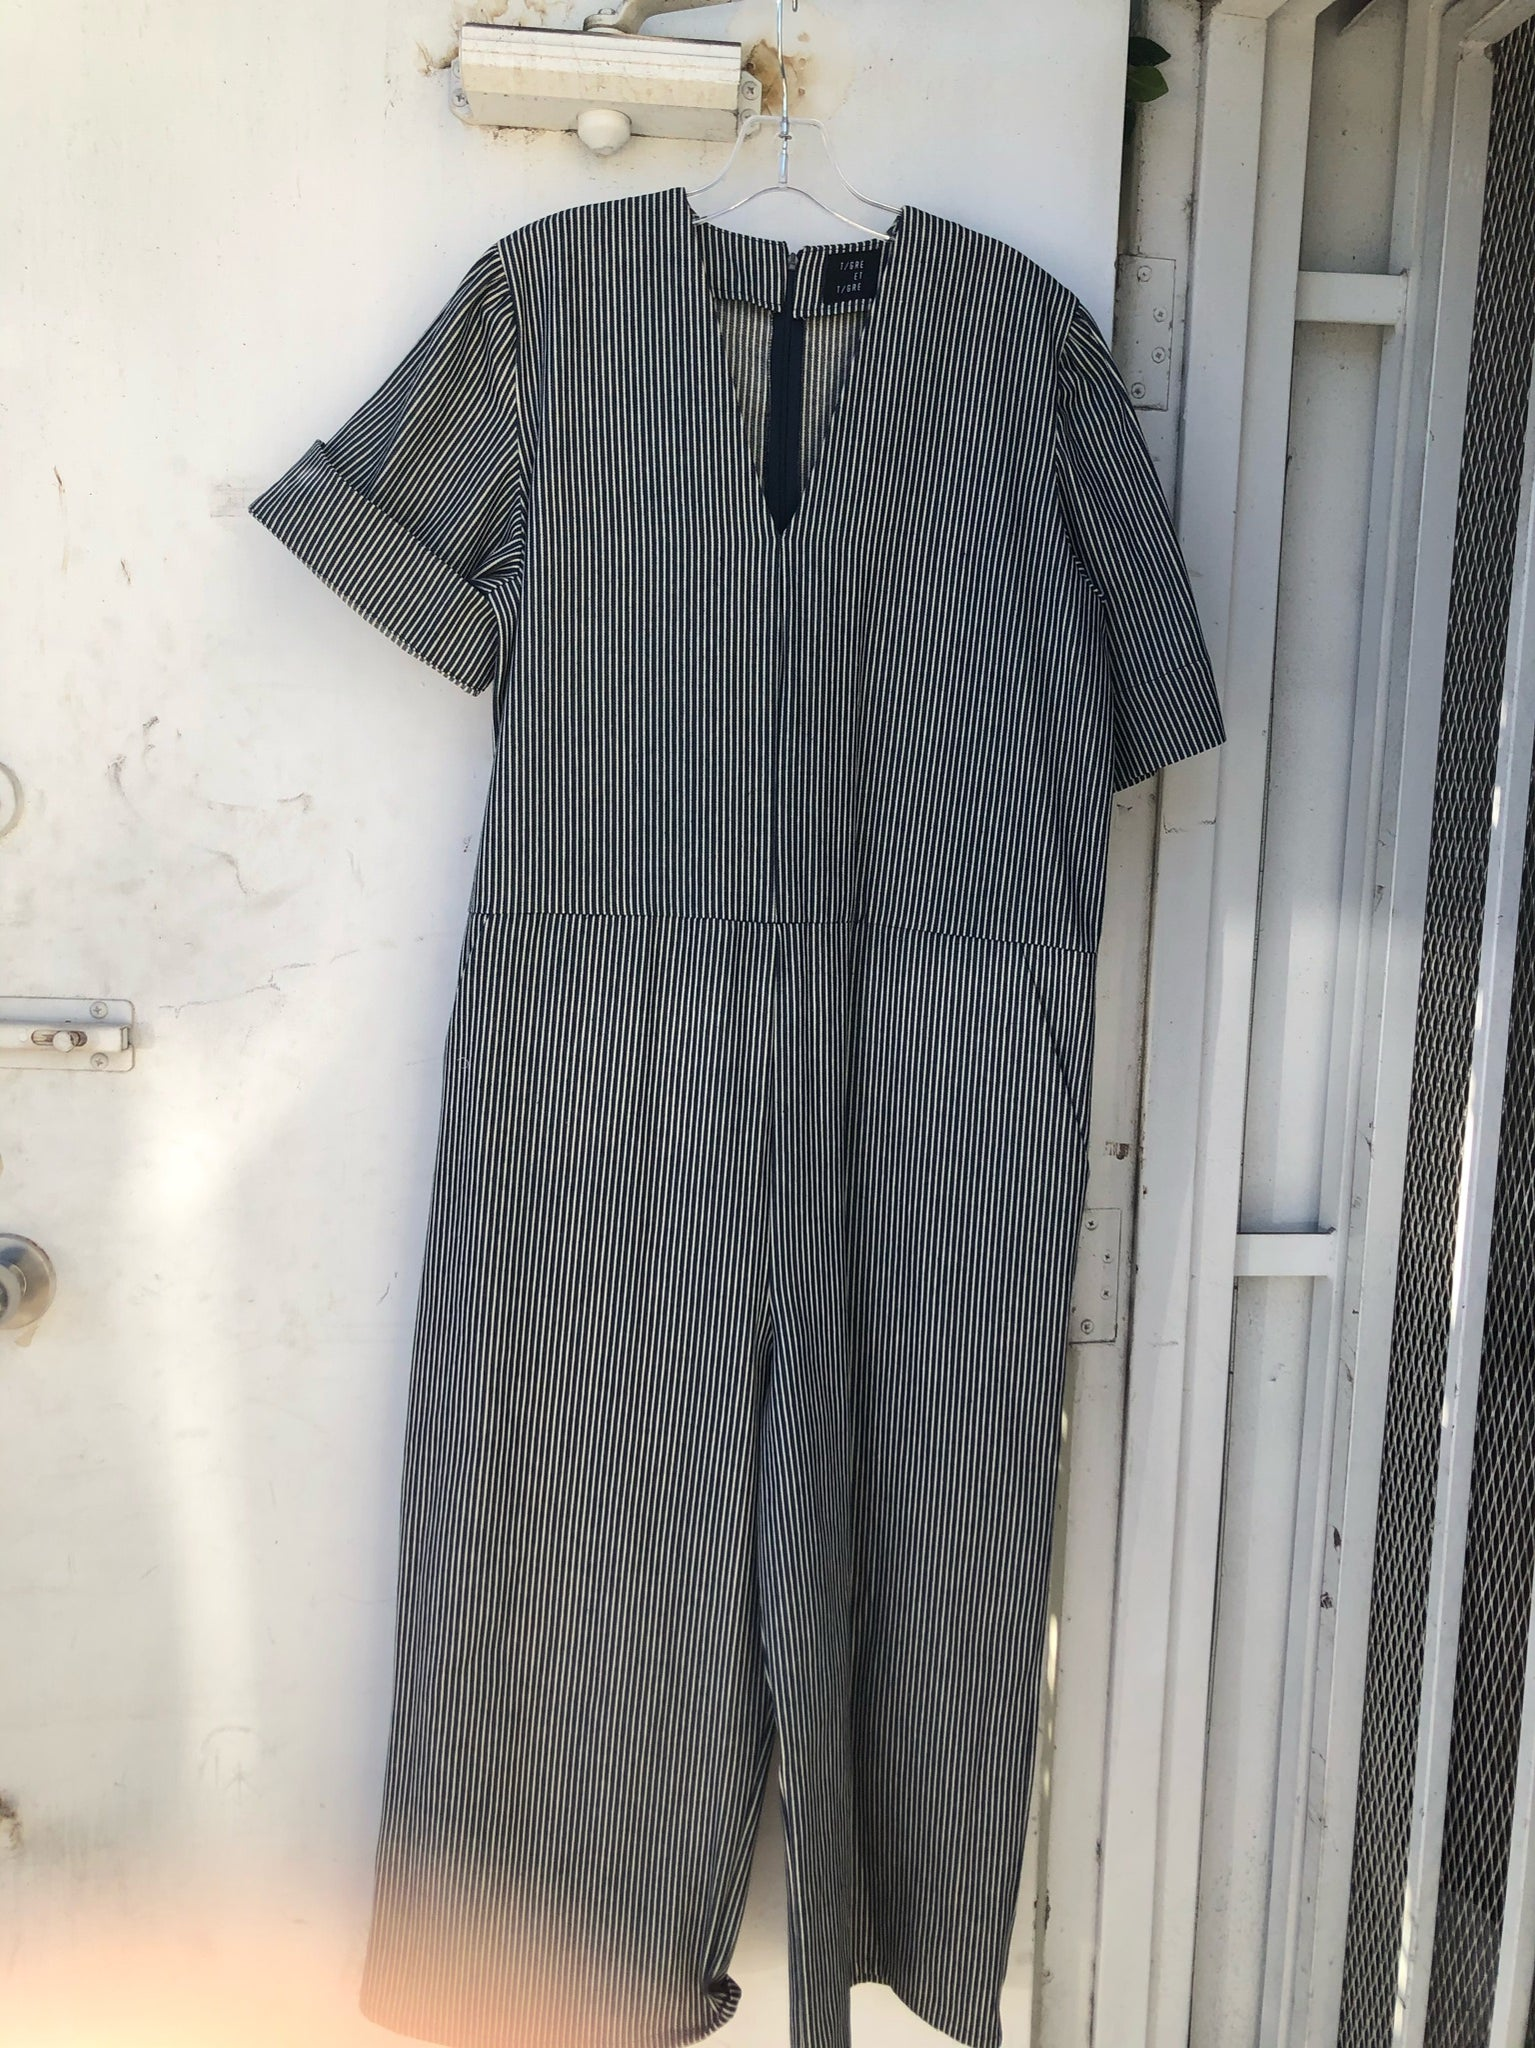 Ryan Jumpsuit in Railroad - Size XS/S